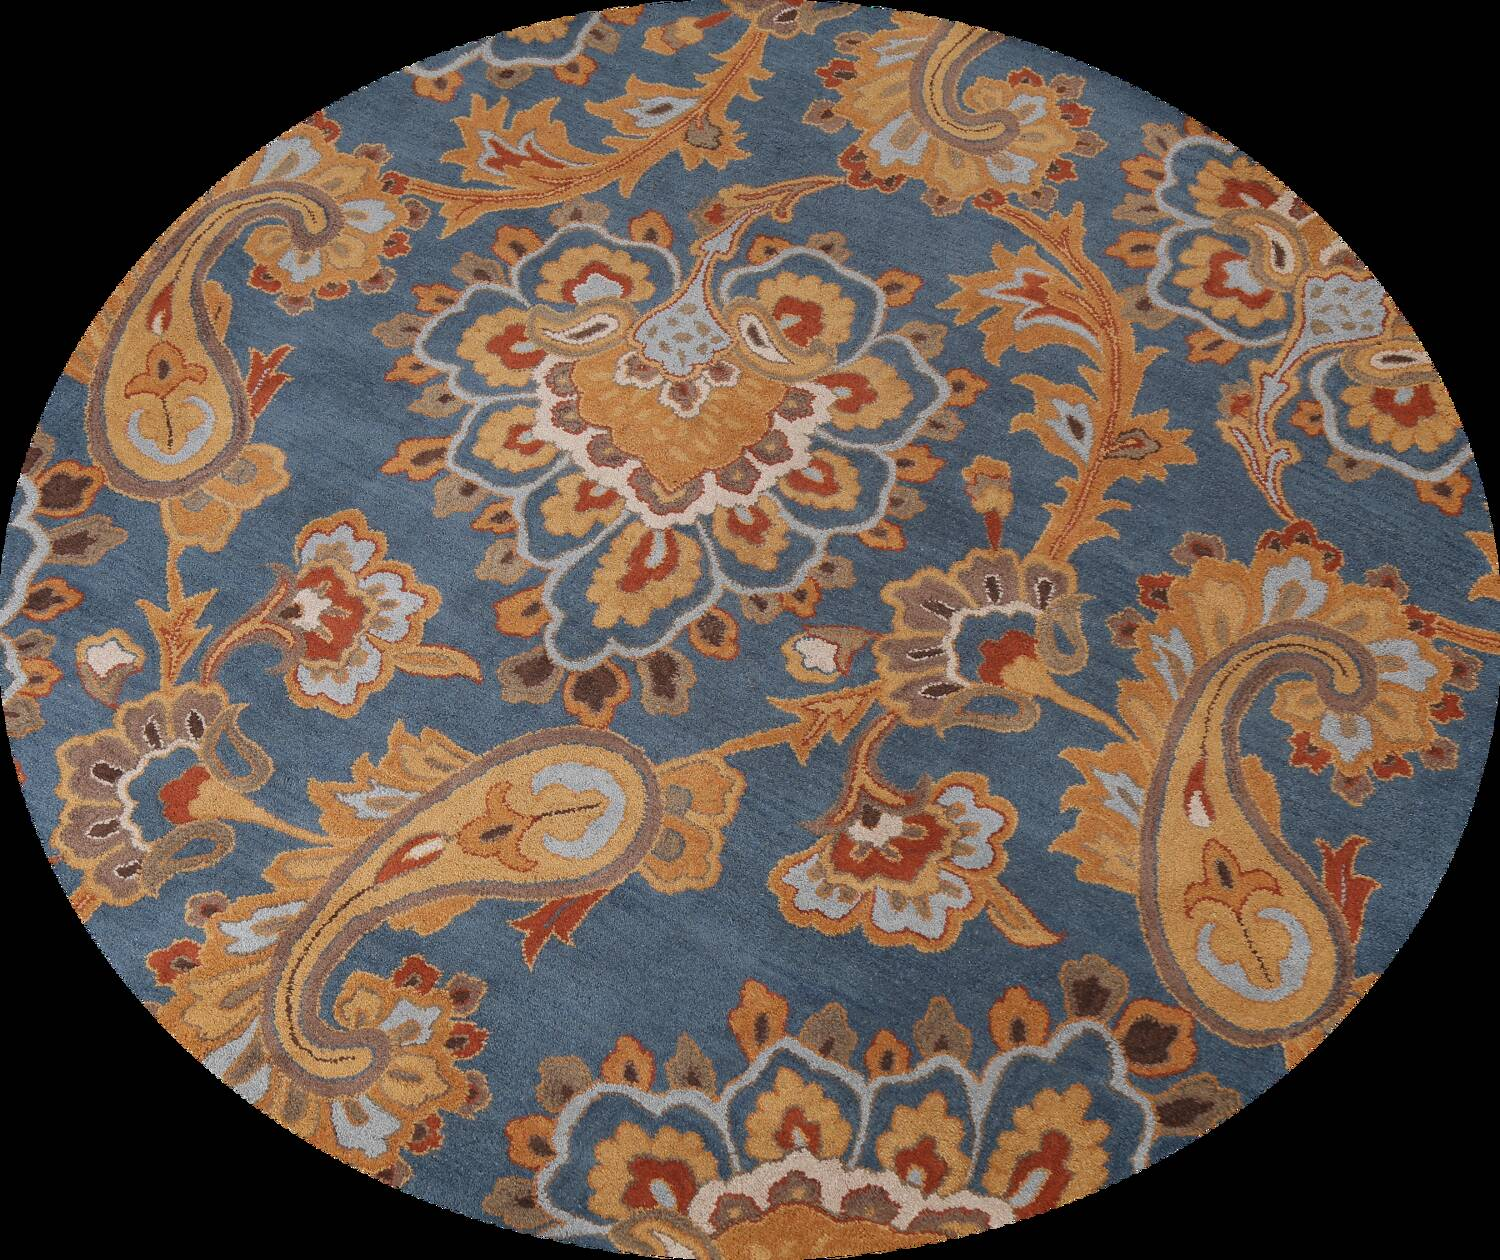 Light Blue Floral Hand-Tufted Round Rug 8x8 image 1